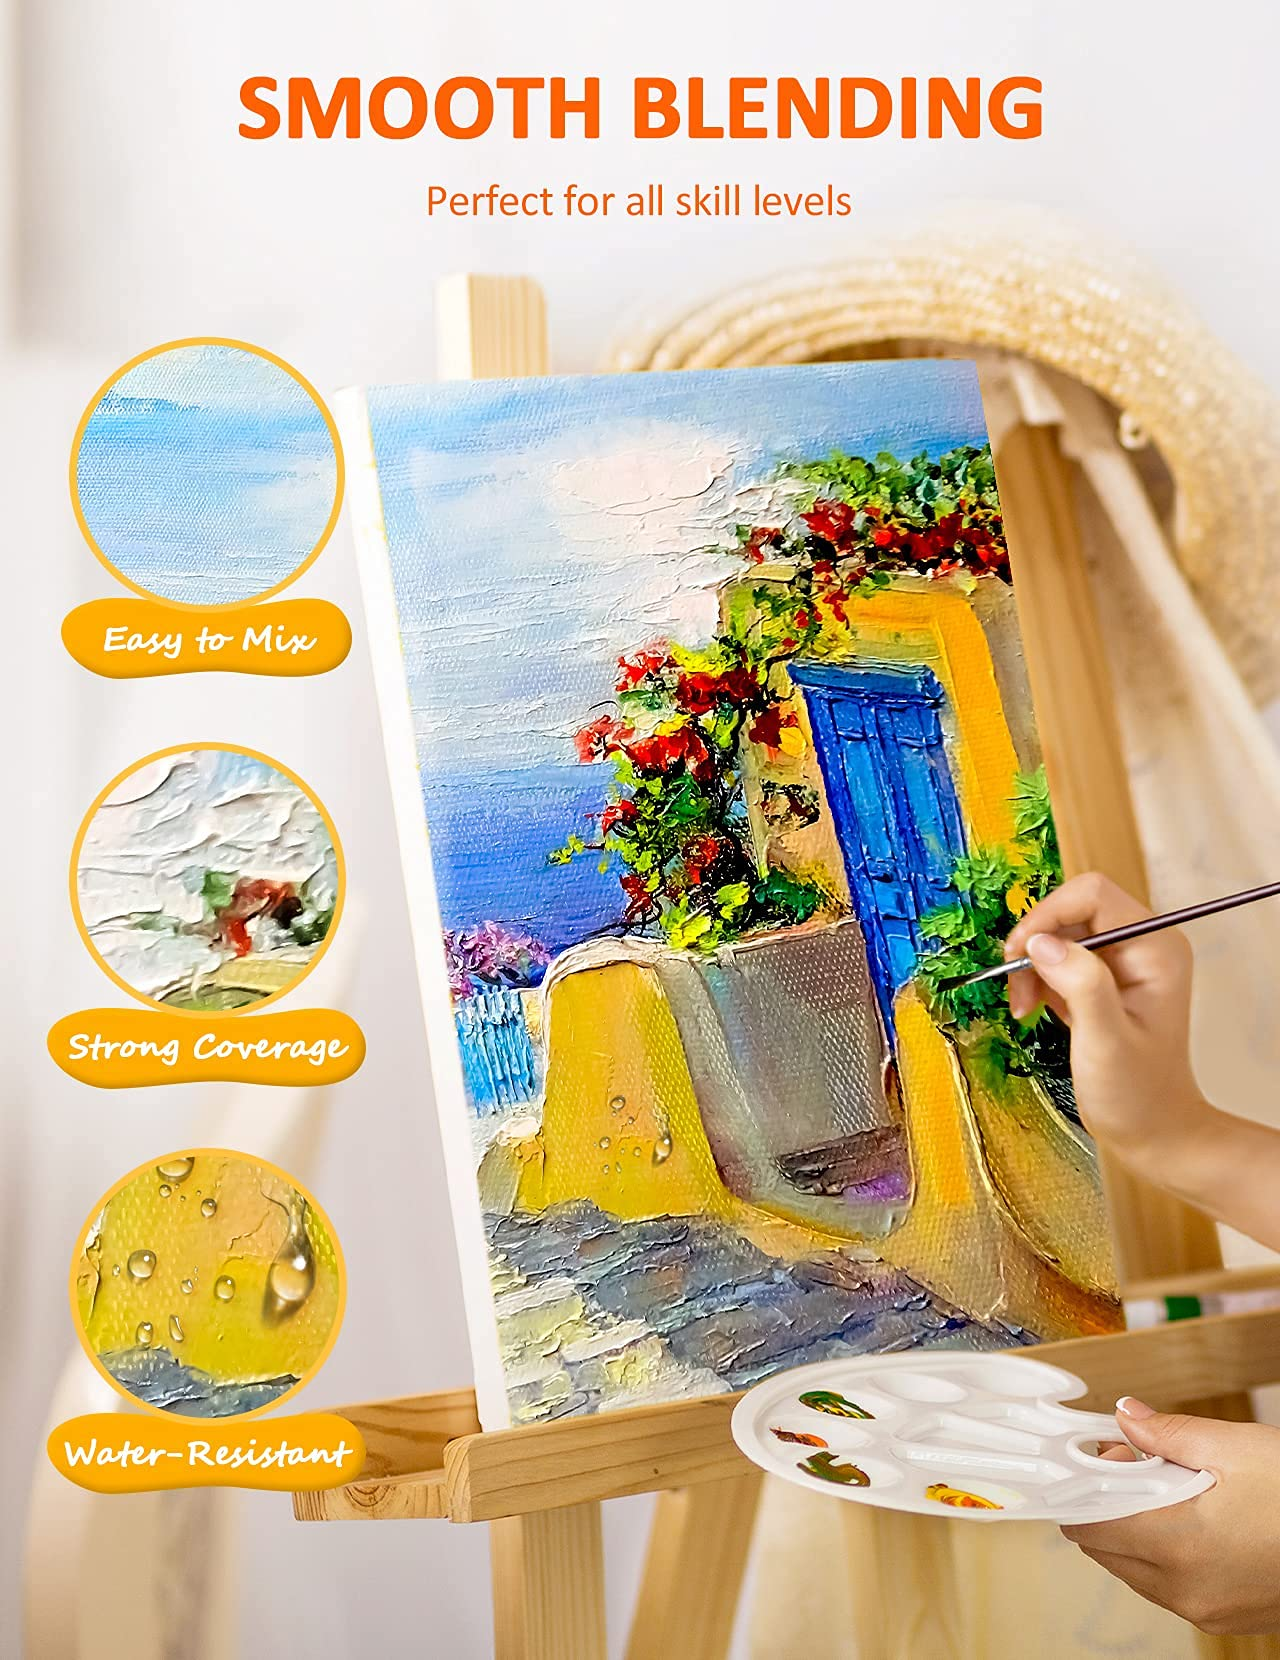 ATMOKO Acrylic Paint Set, Paint Set with 24 Paint Tubs, 3 Paintbrushes, 1 Palette, 1 Canvas,Perfect for Canvas, Wood, Ceramic, Fabric etc, Good Blending & Rich Pigments for Beginner Or Professional